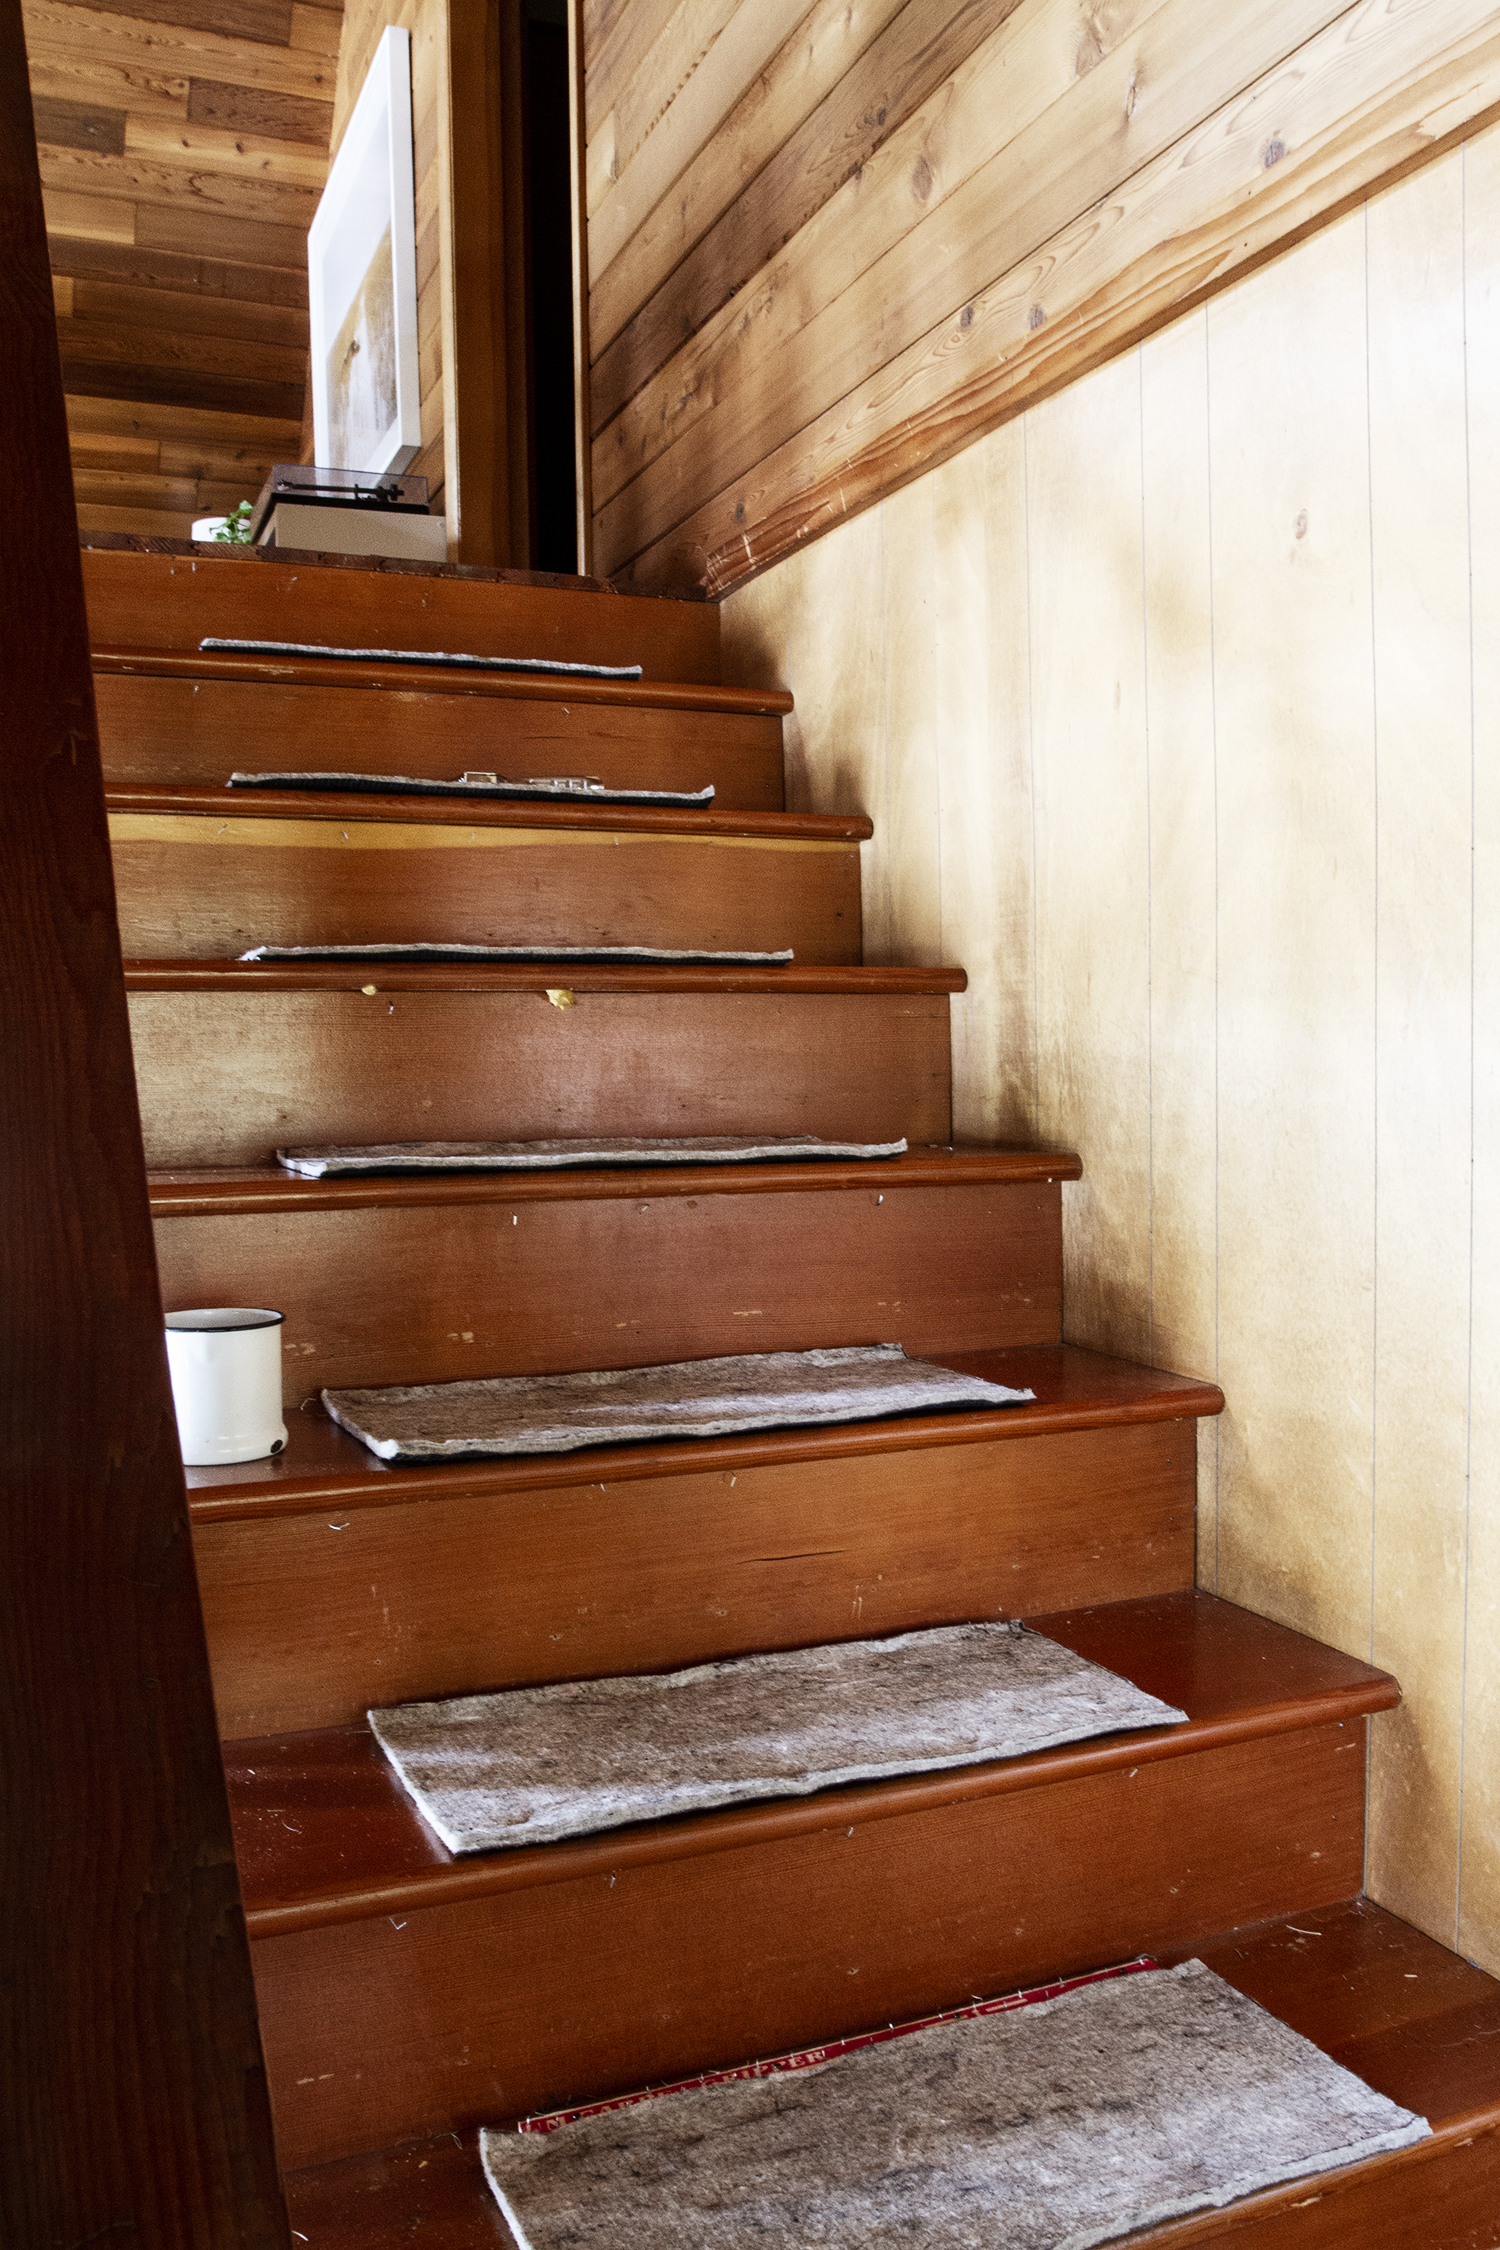 Installing a Carpet Runner on Your Stairs